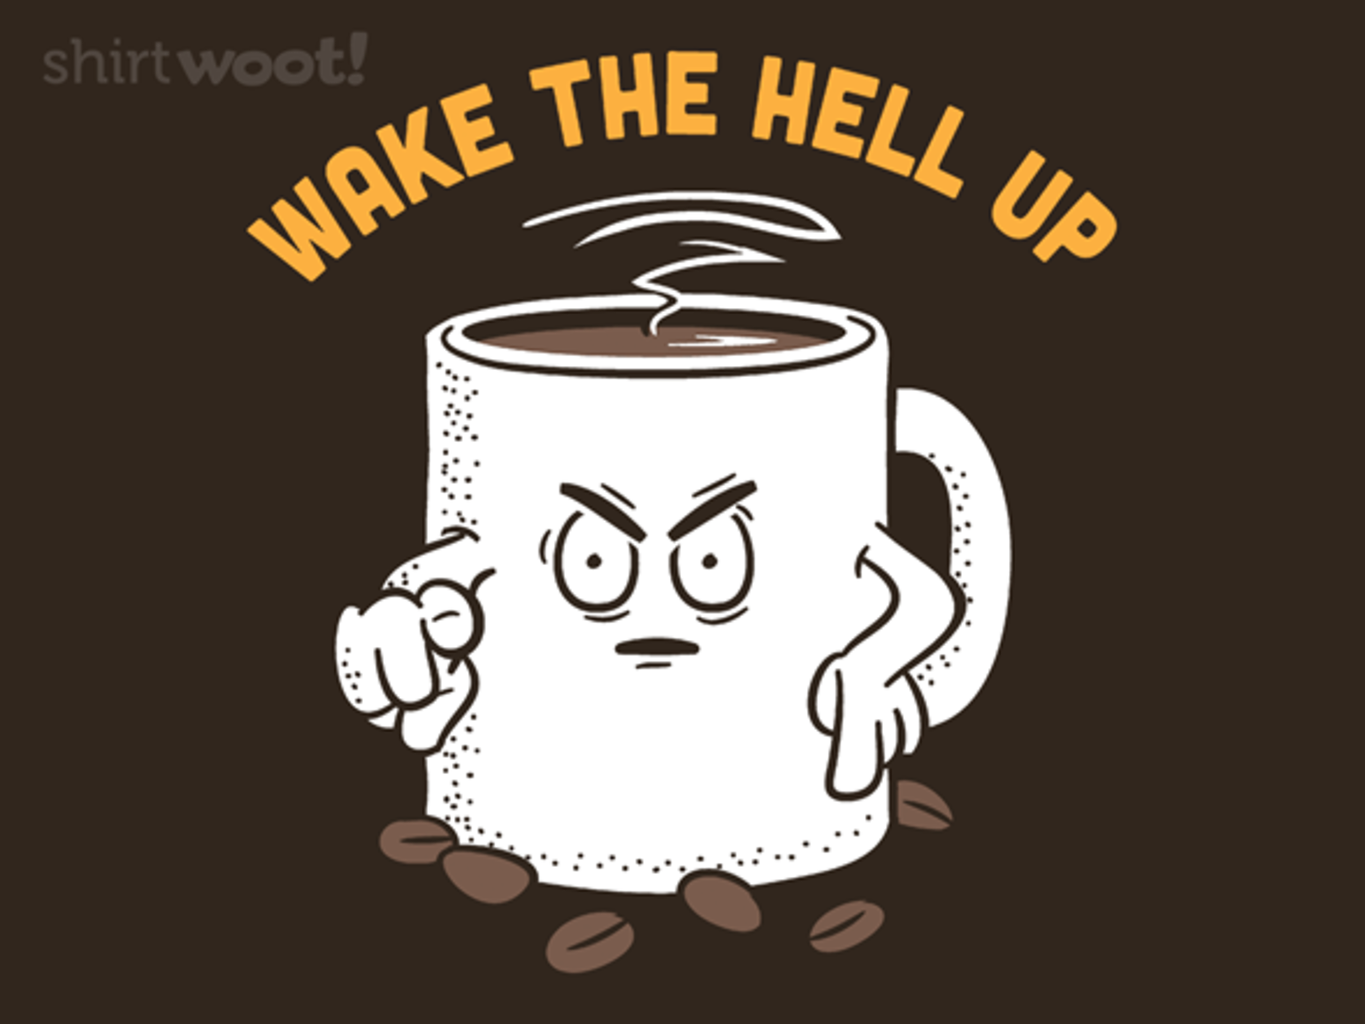 Woot!: Wake The Hell Up!